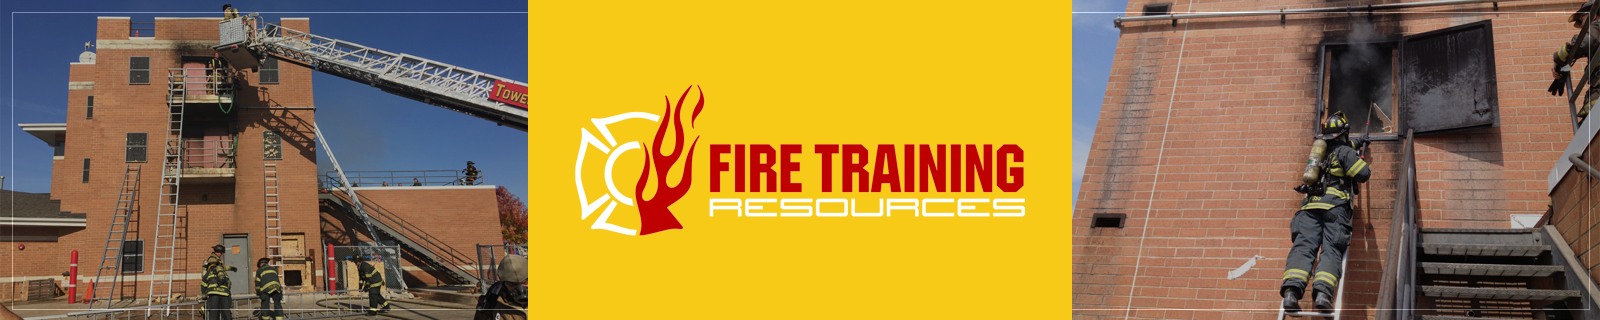 Machinery Rescue Operations Course - Carol Stream, IL